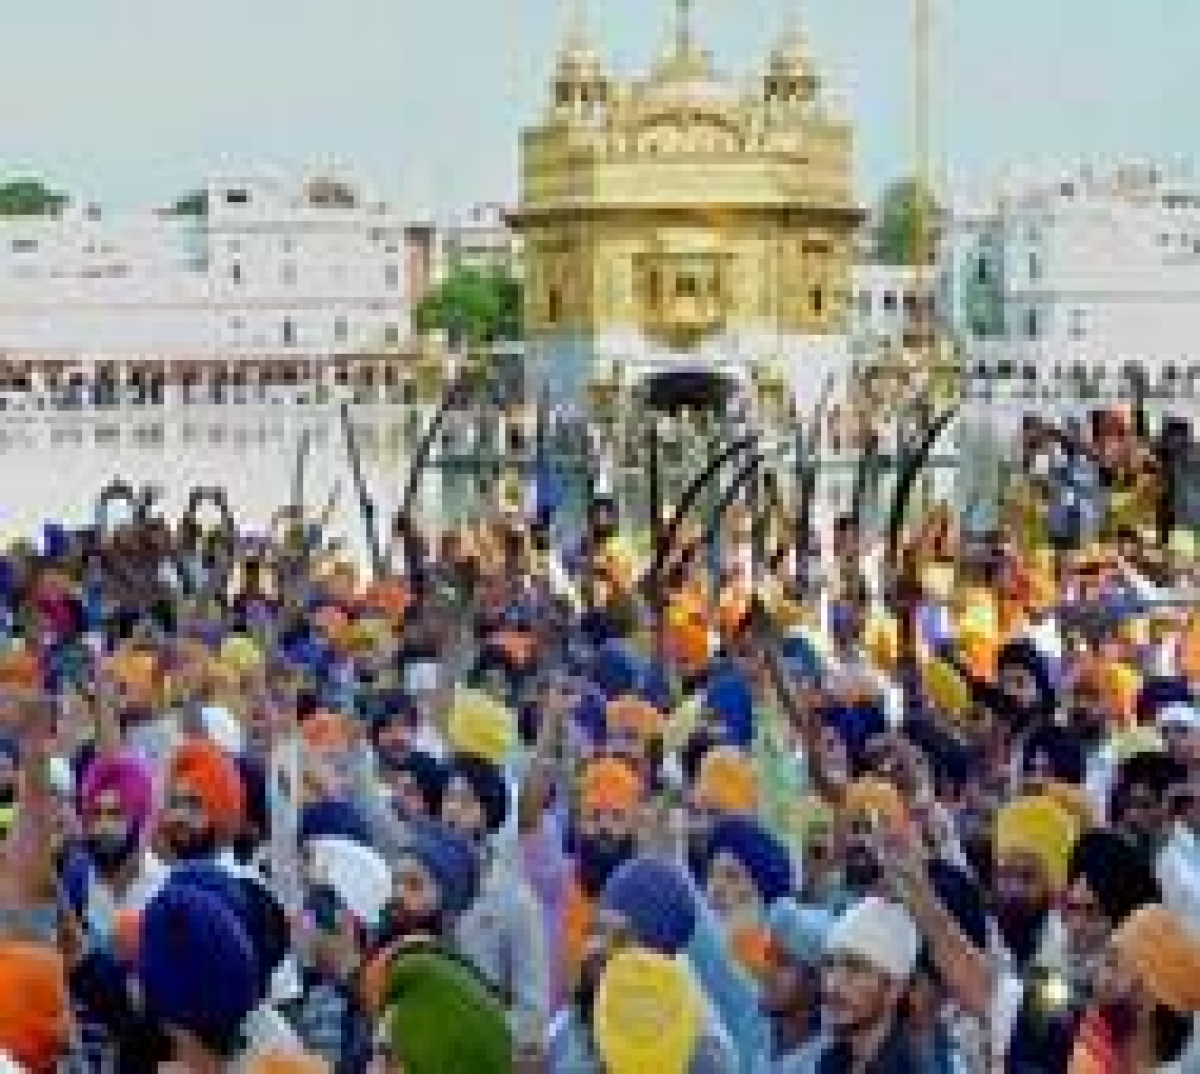 Operation Bluestar anniversary: prayers offered at Golden Temple